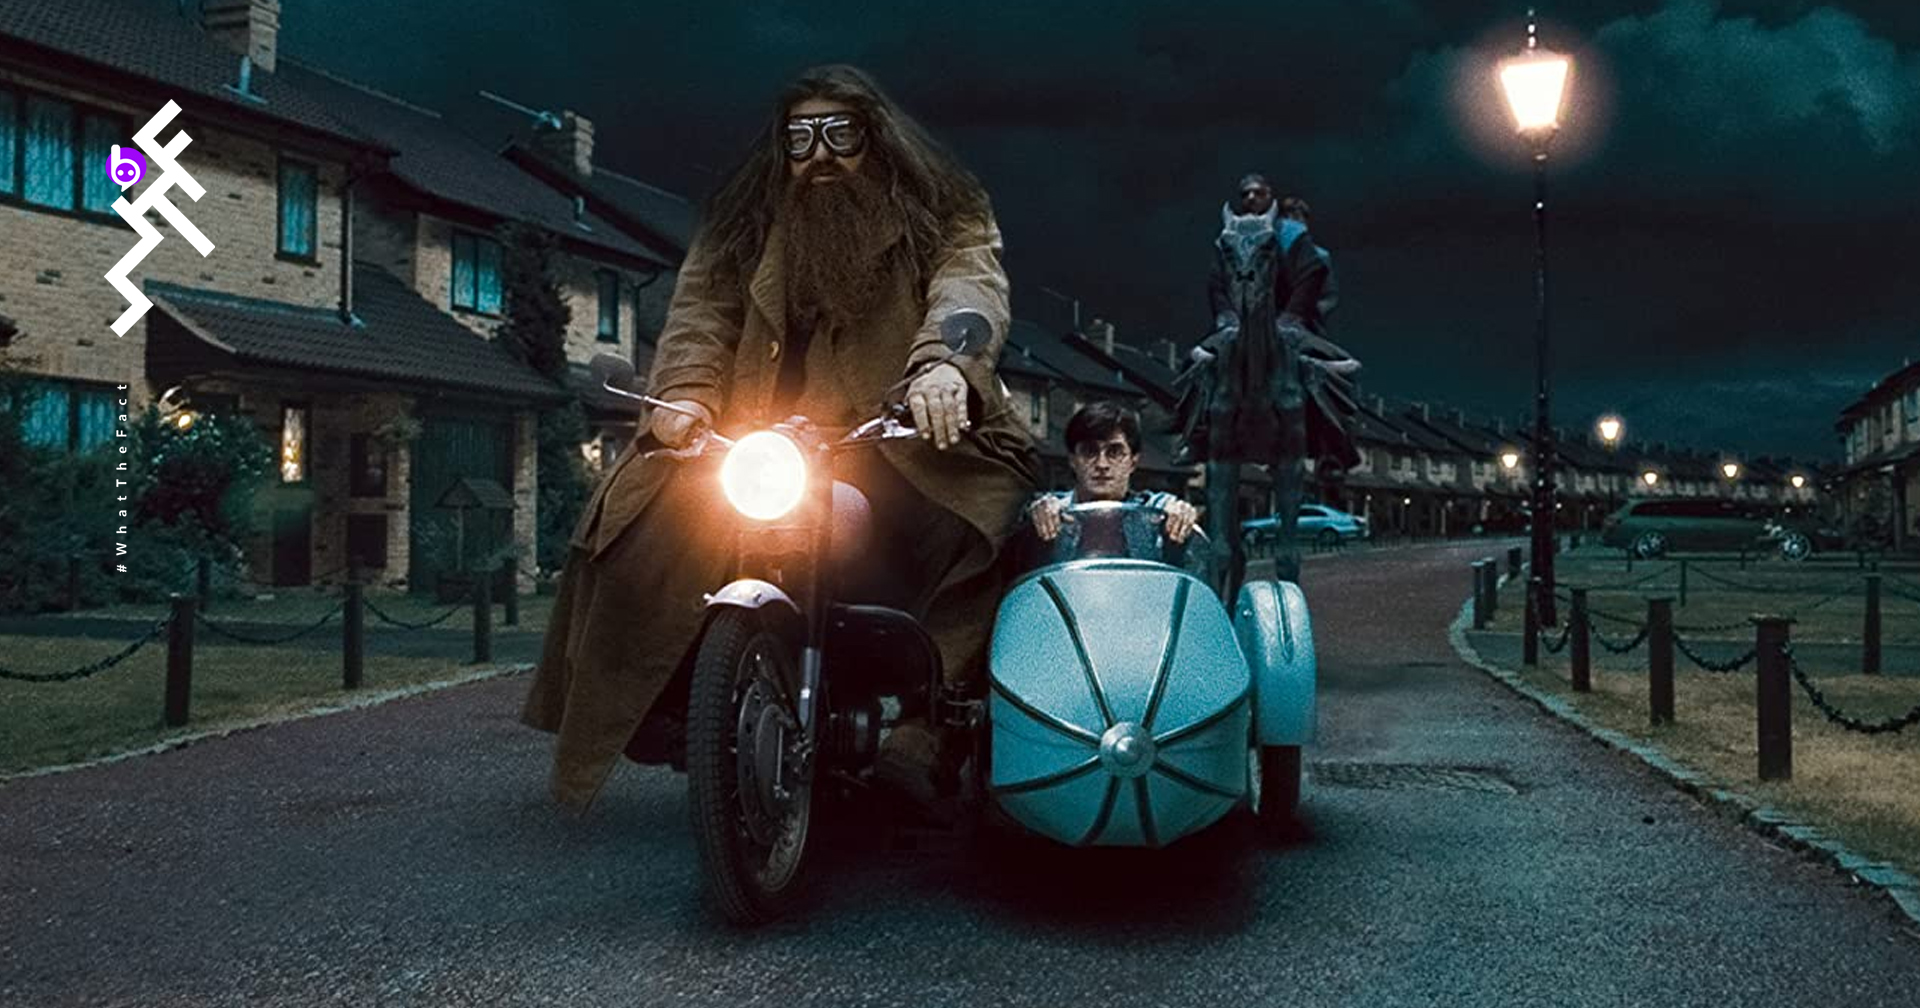 Hagrid will be in Fantastic Beasts 3